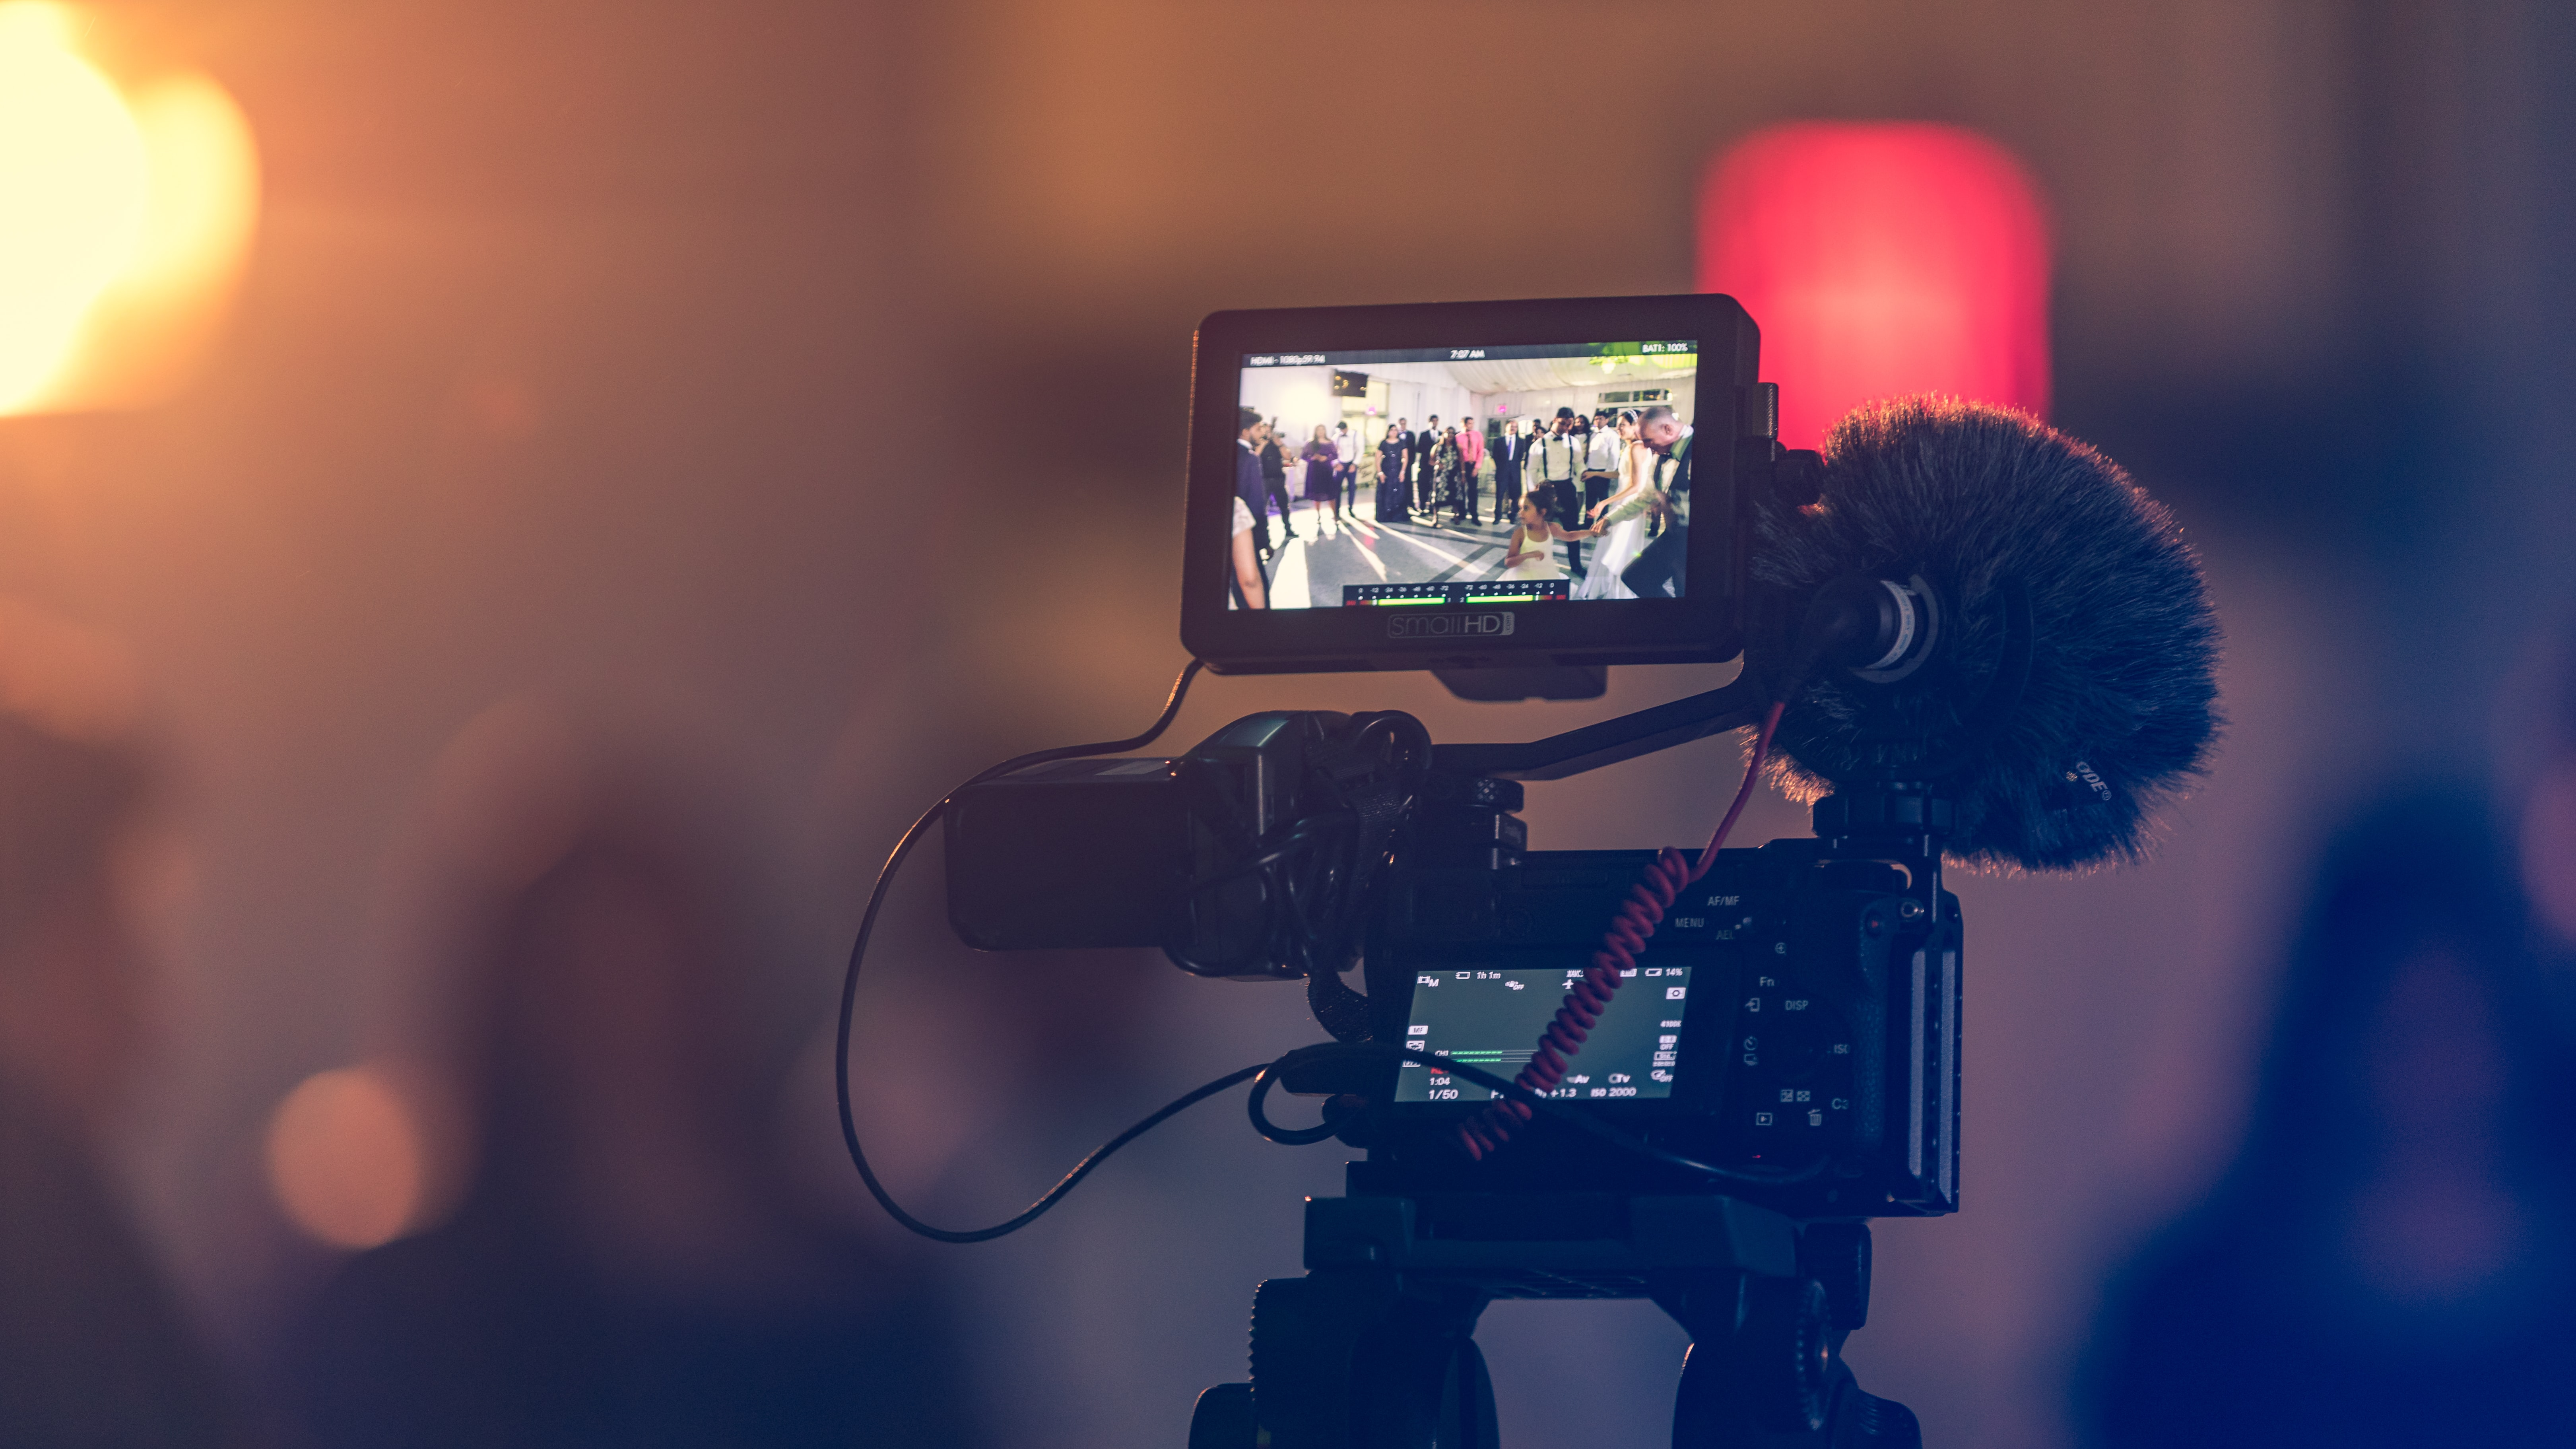 Closeup of video camera that is filming a scene